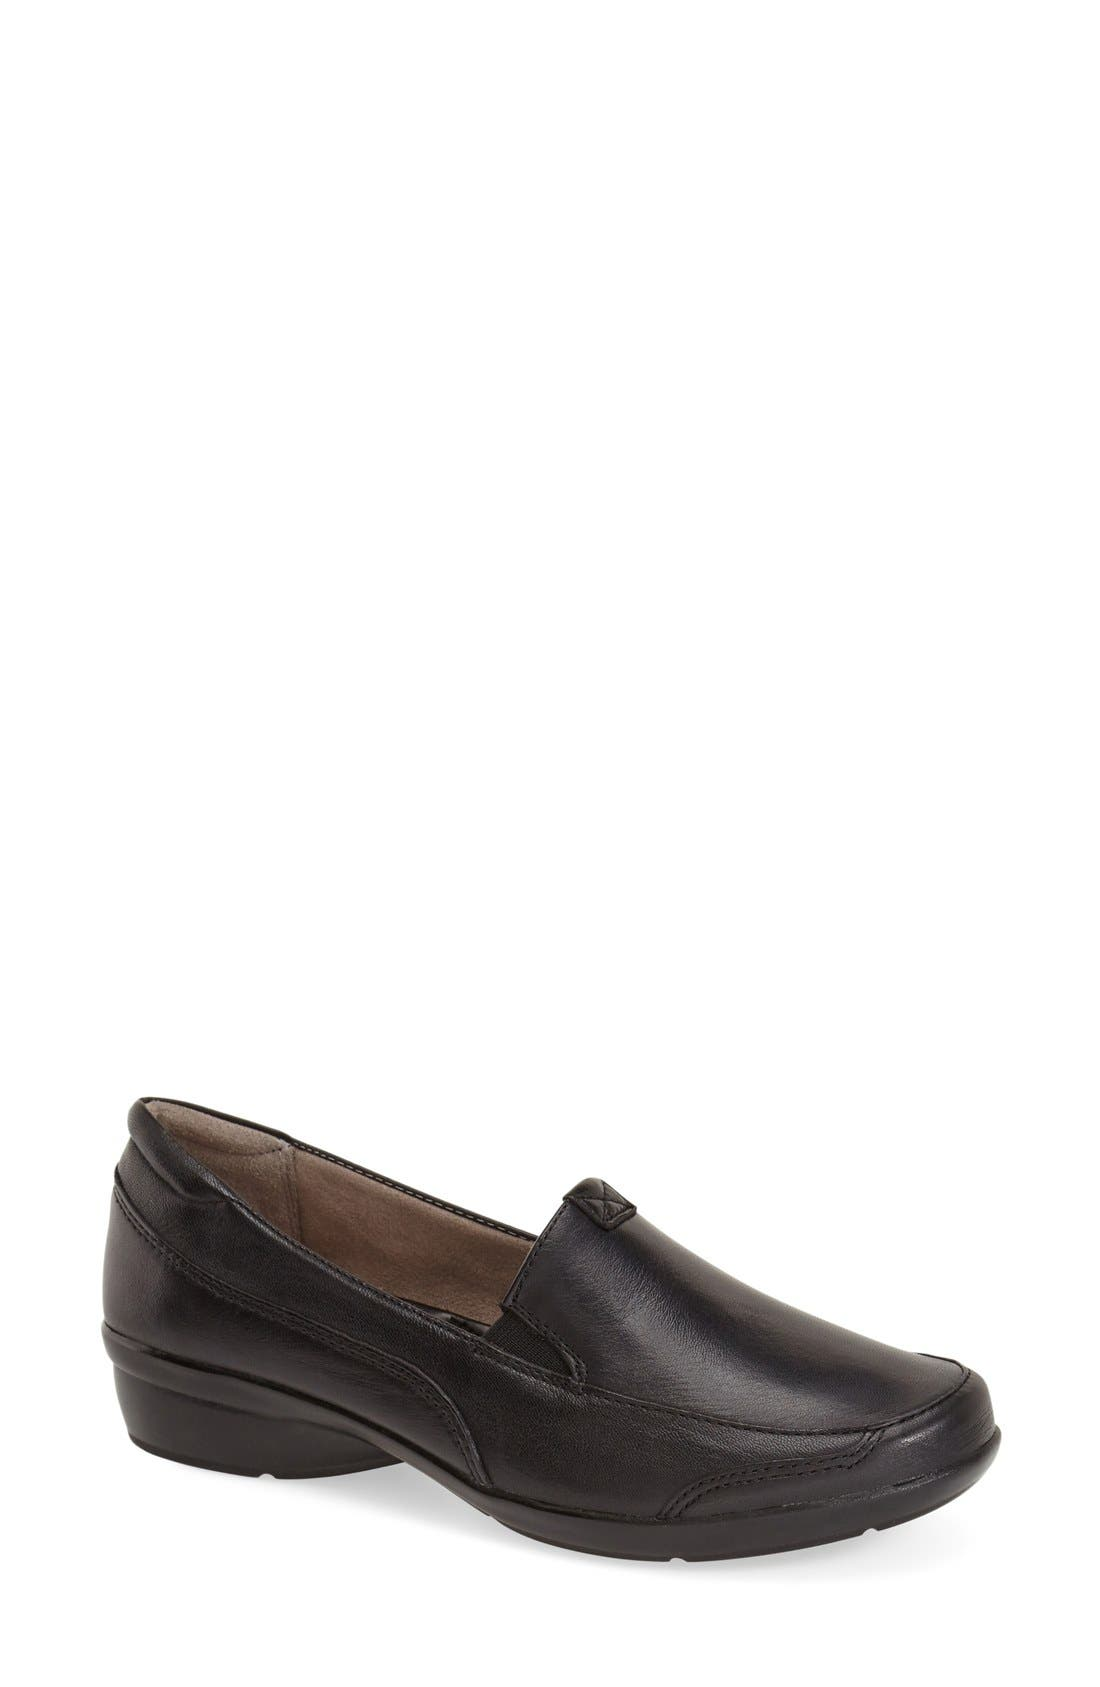 'Channing' Loafer,                             Main thumbnail 1, color,                             BLACK